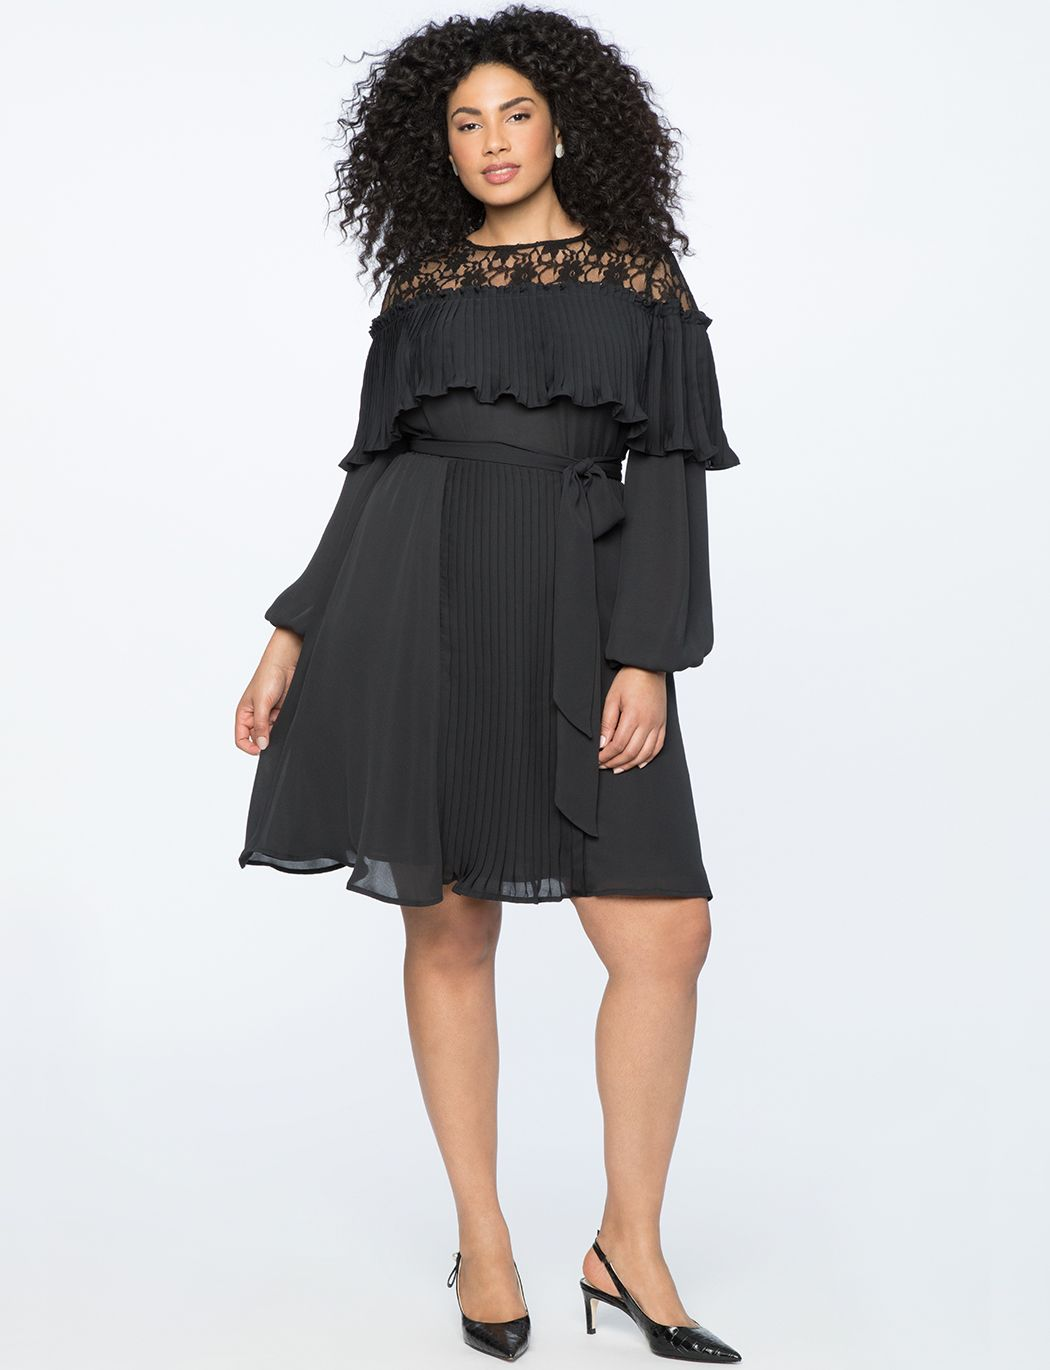 Fit And Flare Dress With Pleat Detail Women S Plus Size Dresses Eloquii Plus Size Wedding Guest Dresses Fit And Flare Dress Junior Party Dresses [ 1370 x 1050 Pixel ]